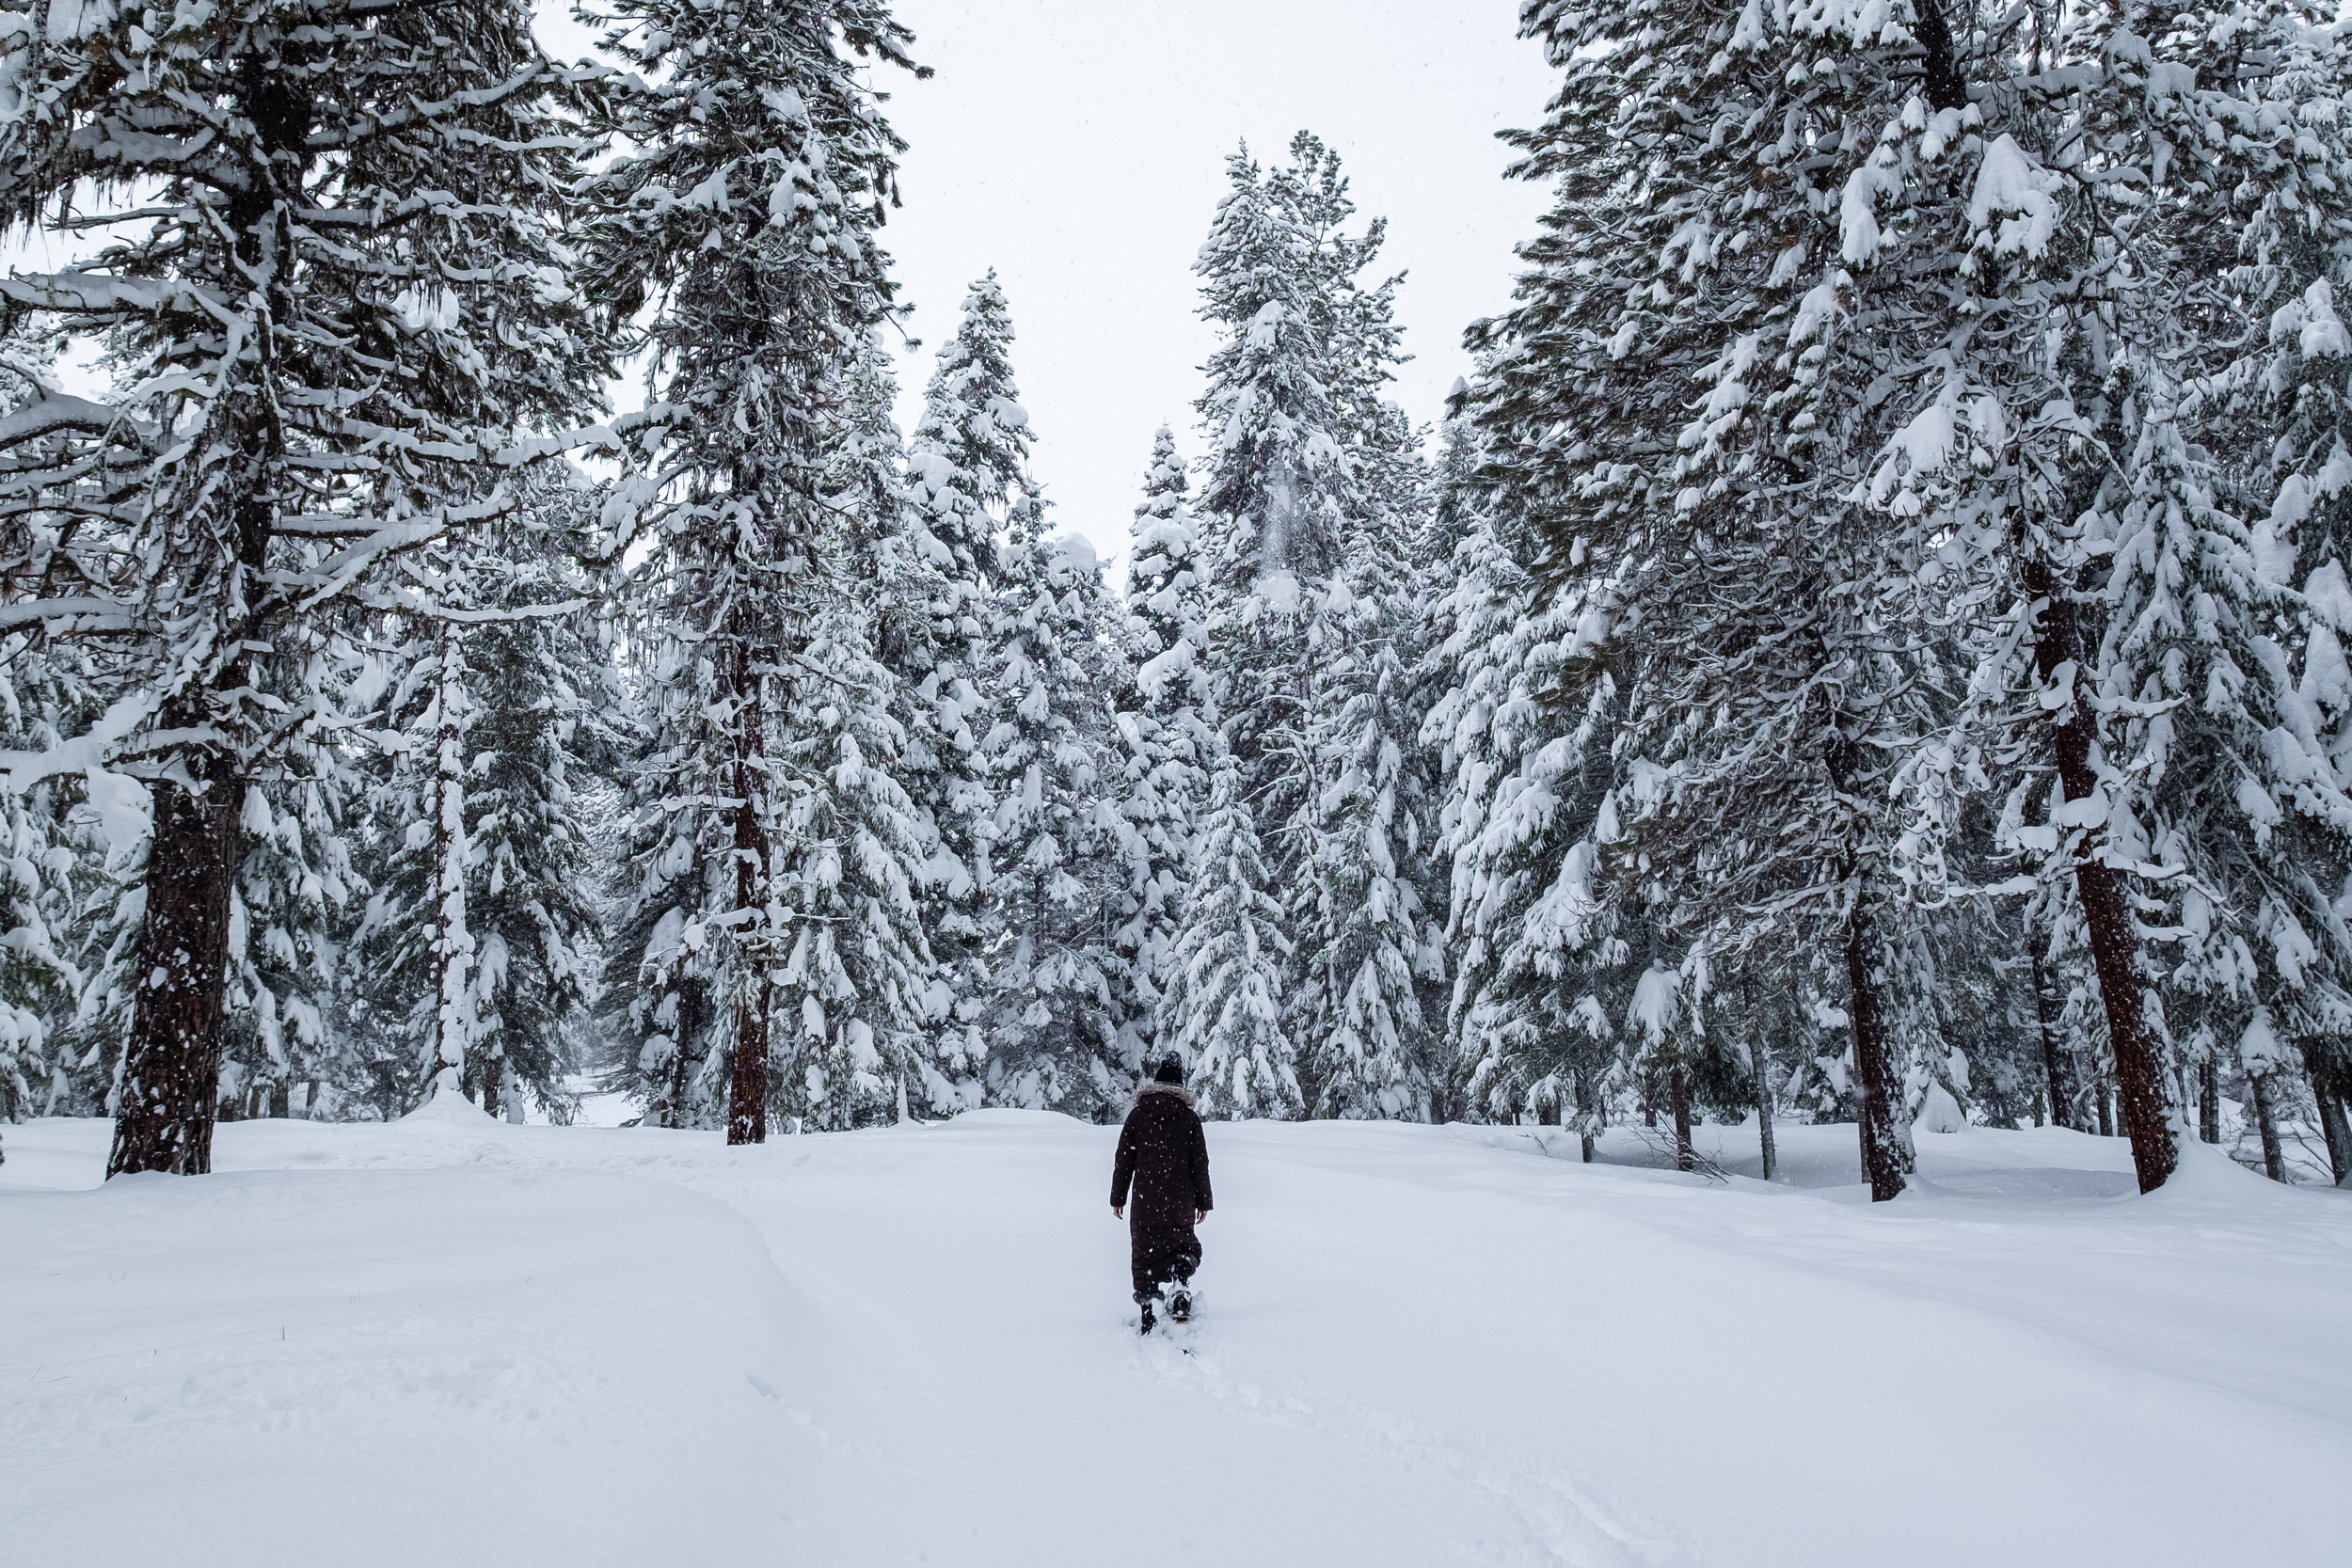 Exploring Ponderosa State Park by snowshoe